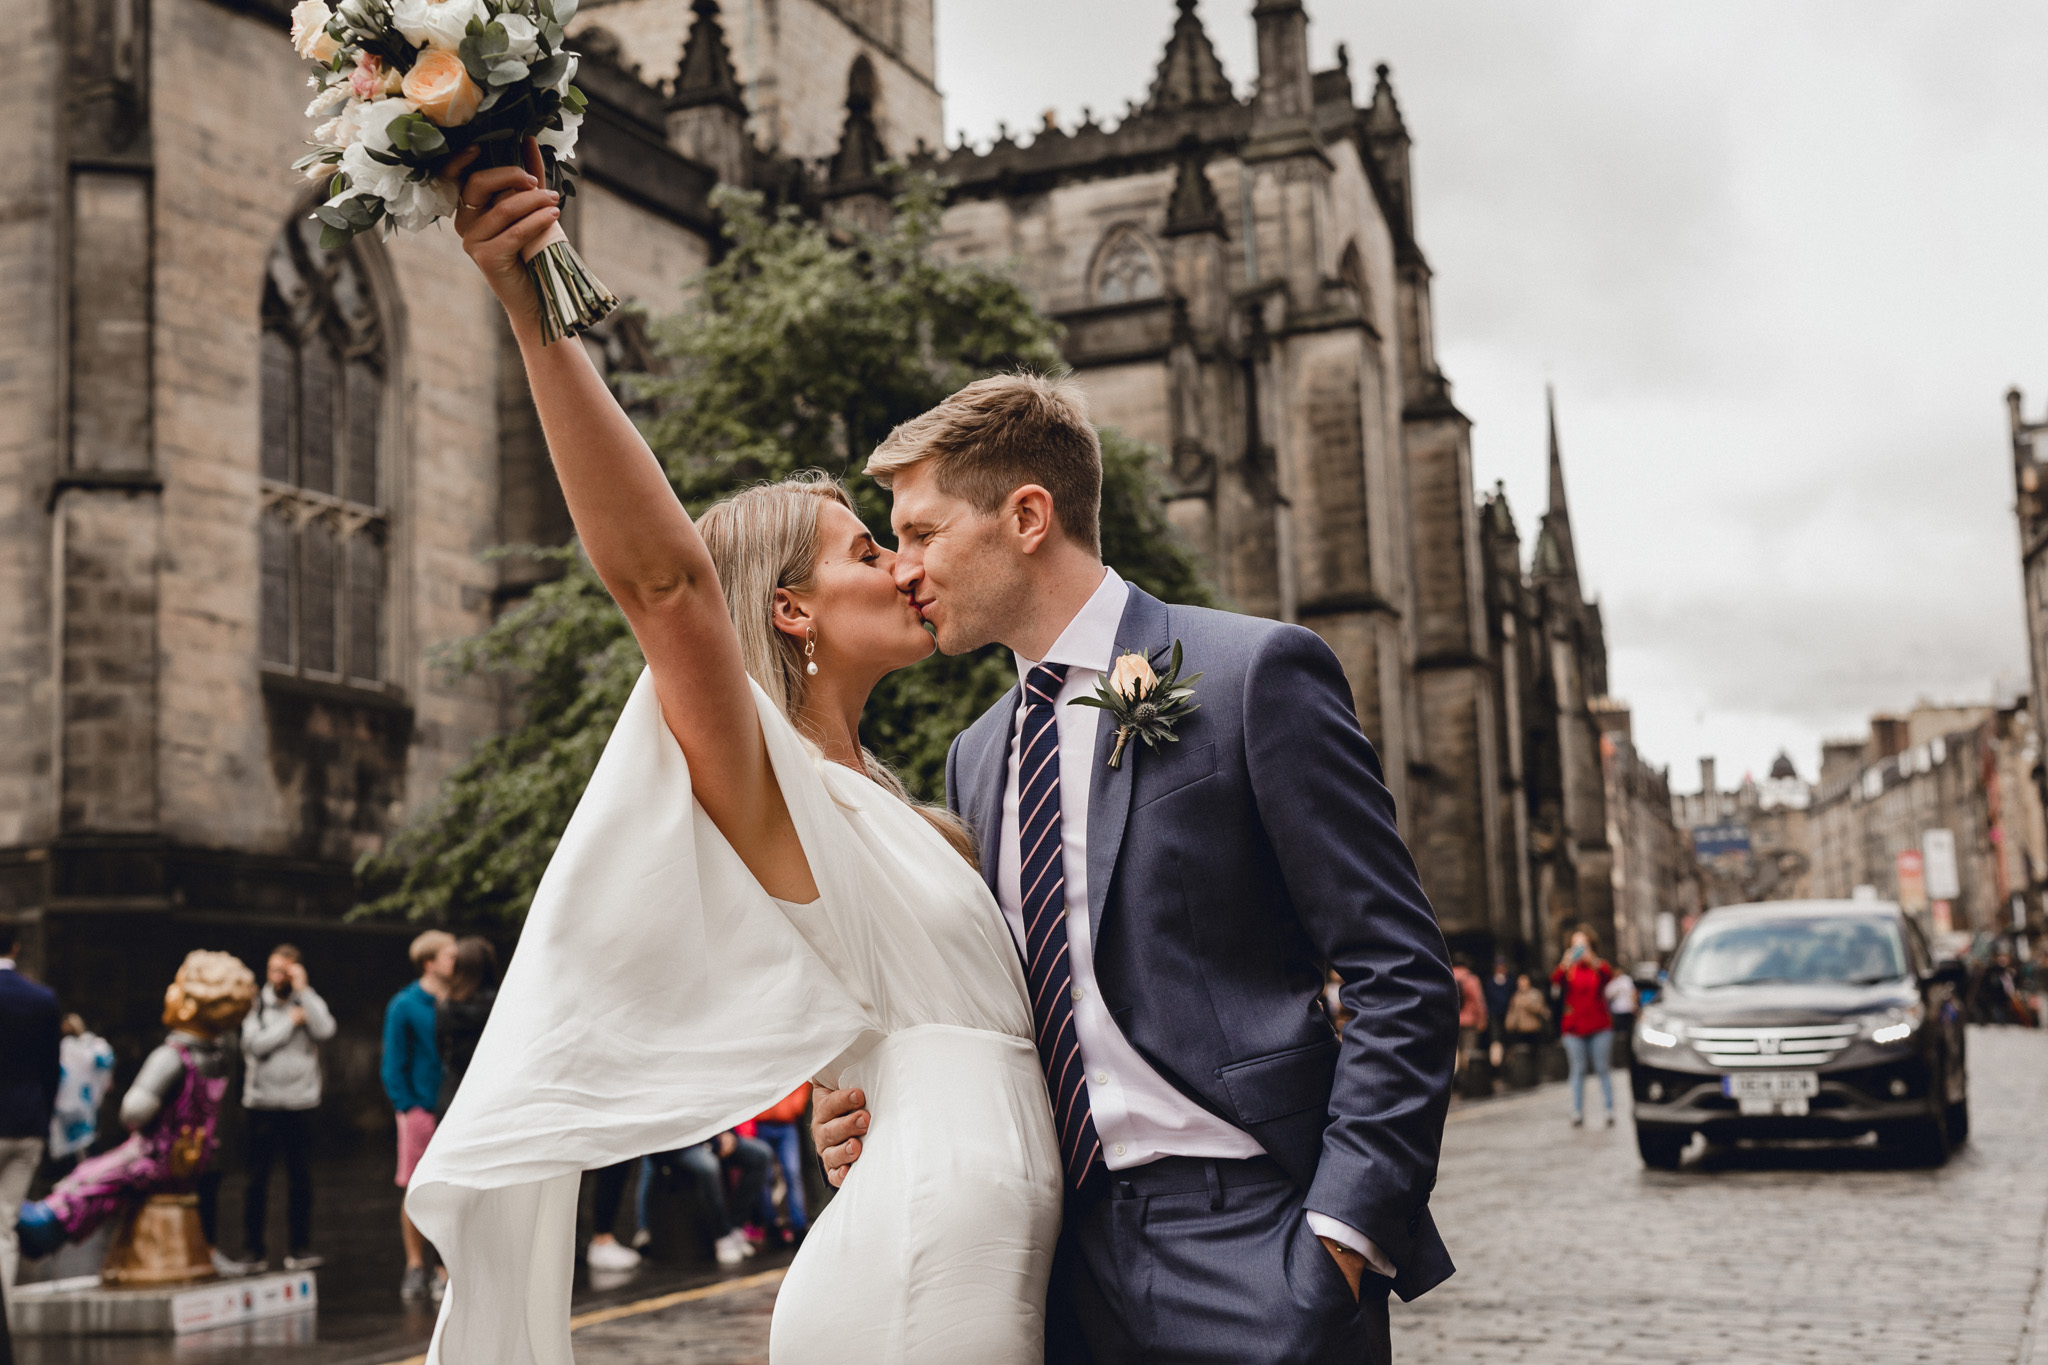 WE GOT MARRIED // OUR LEGALS IN EDINBURGH, SCOTLAND